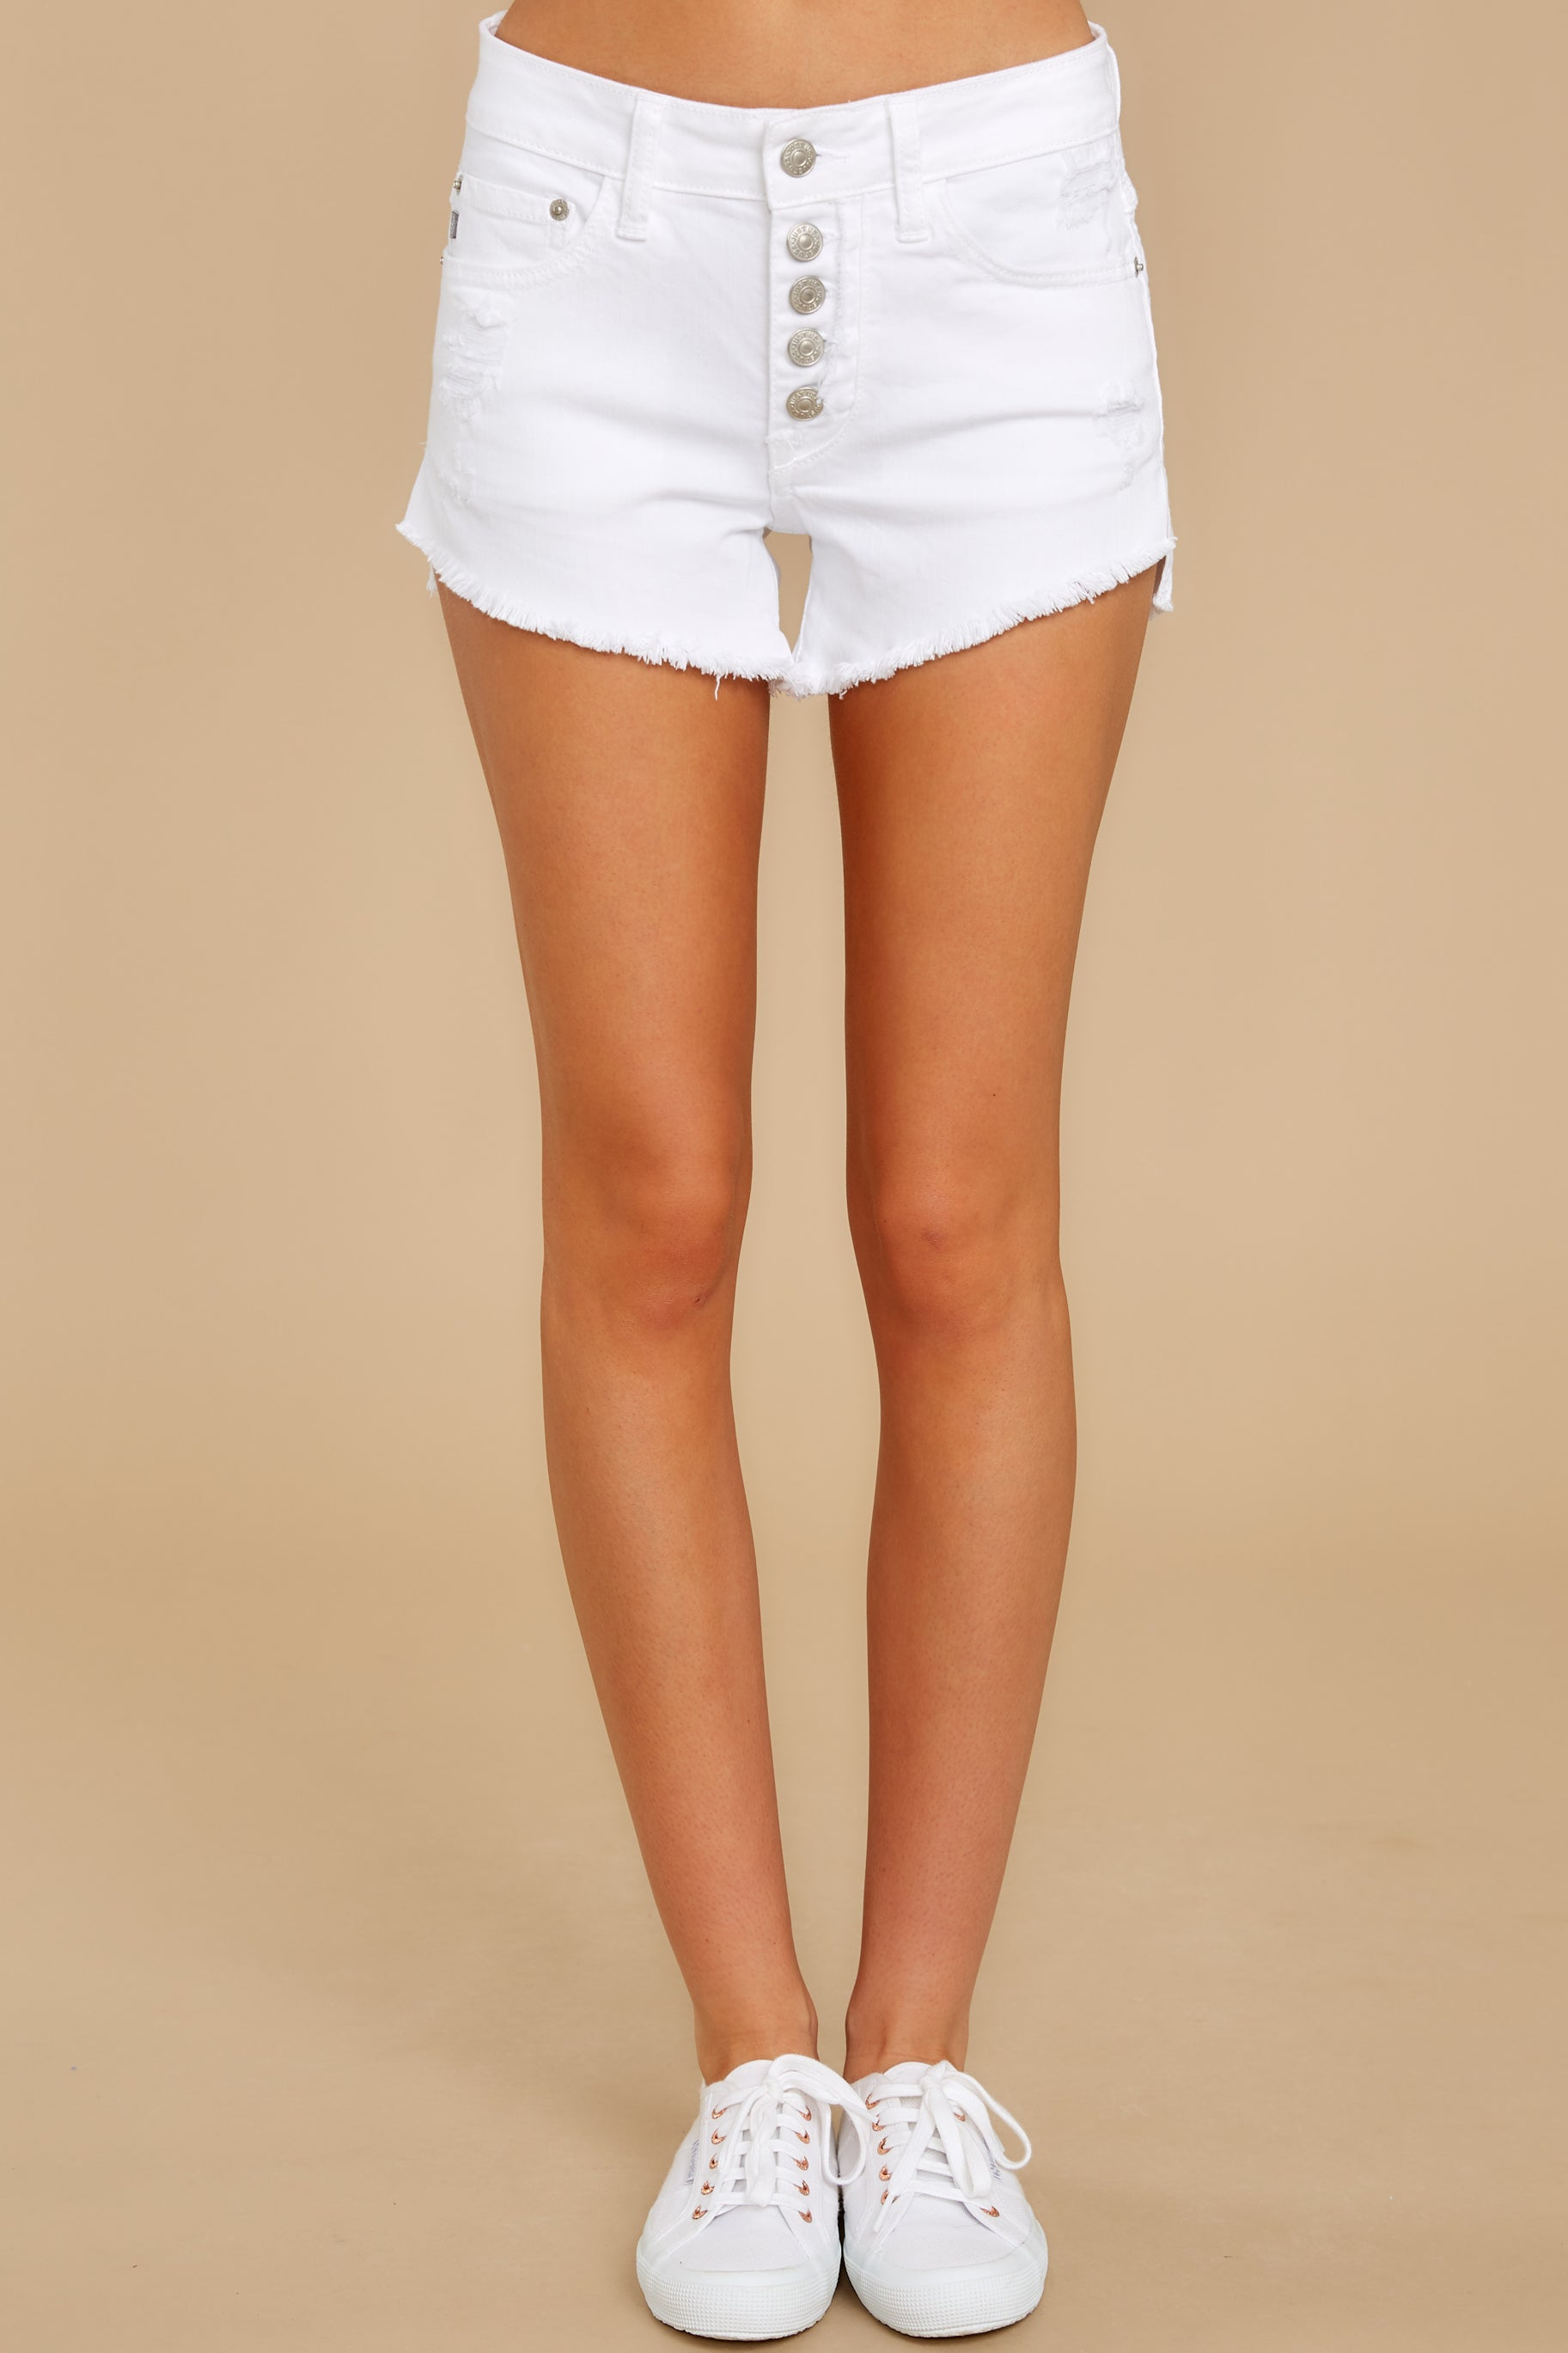 3 Heartbreak Girl White Distressed Denim Shorts at reddress.com